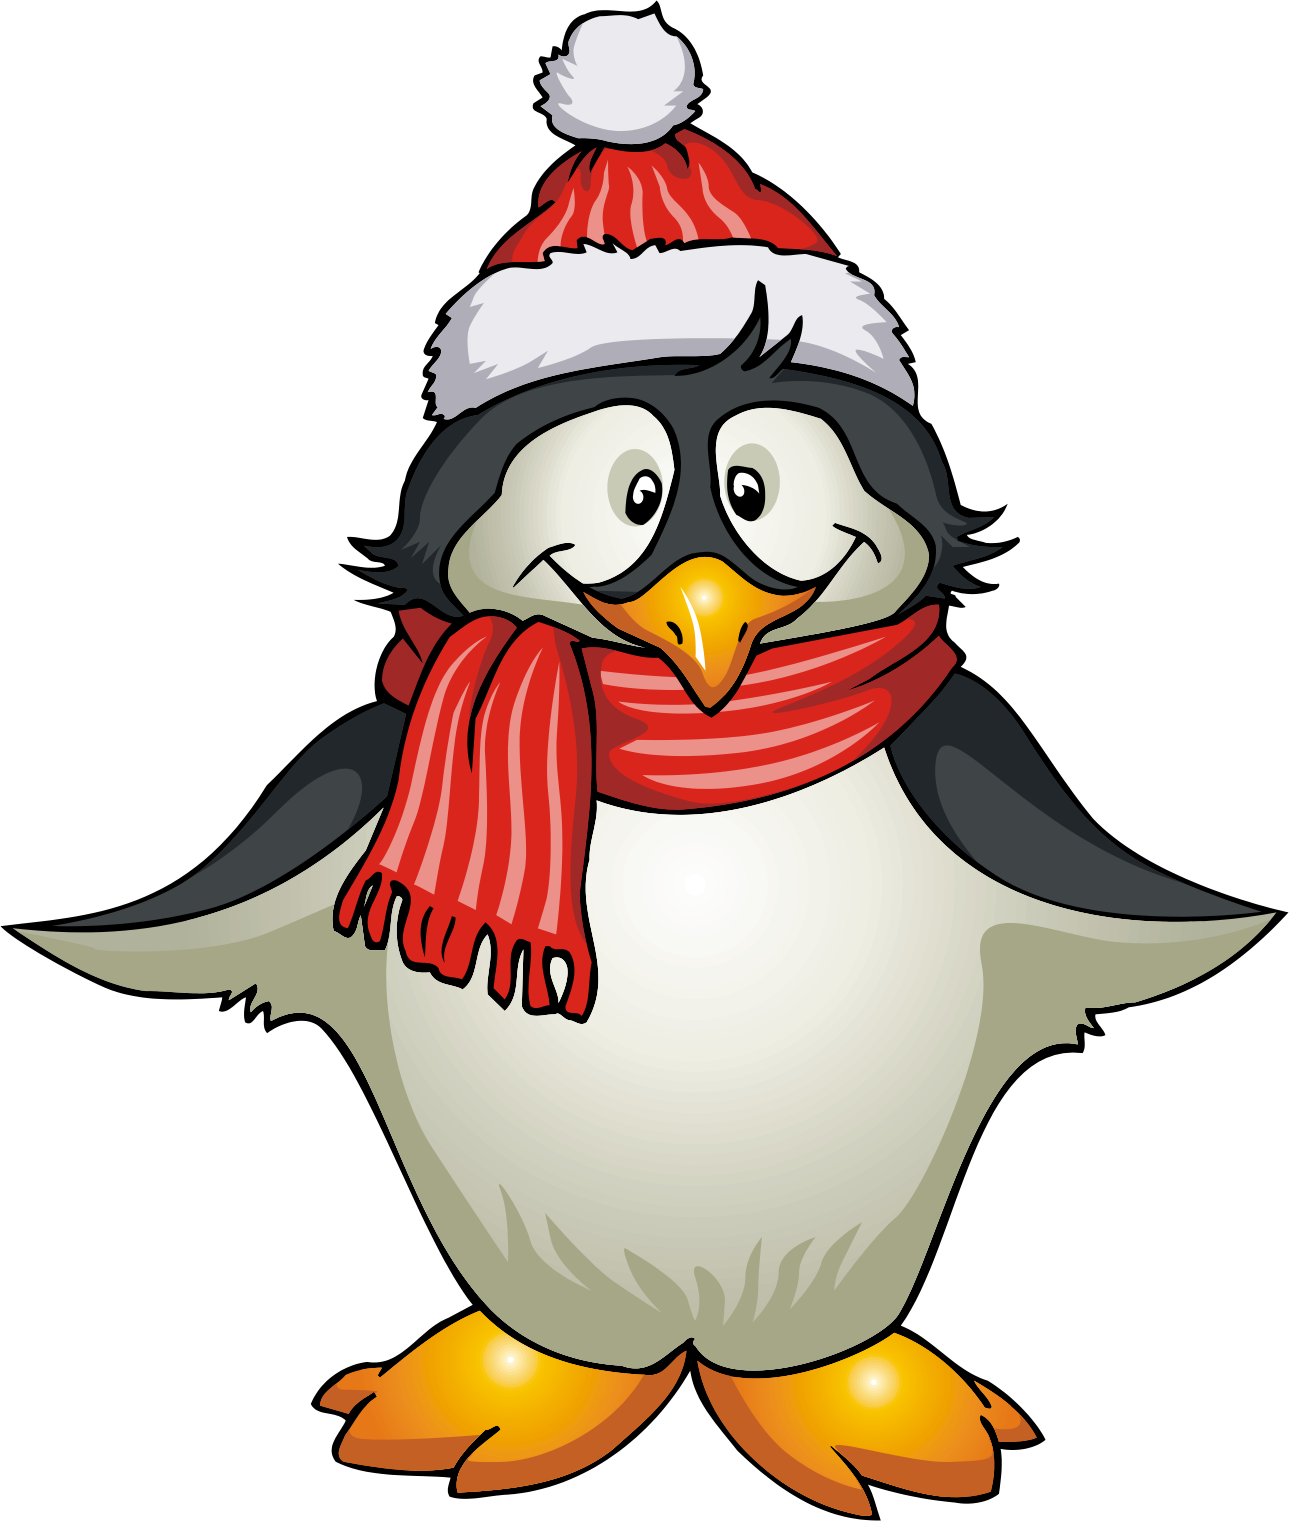 clipart panda winter - photo #14